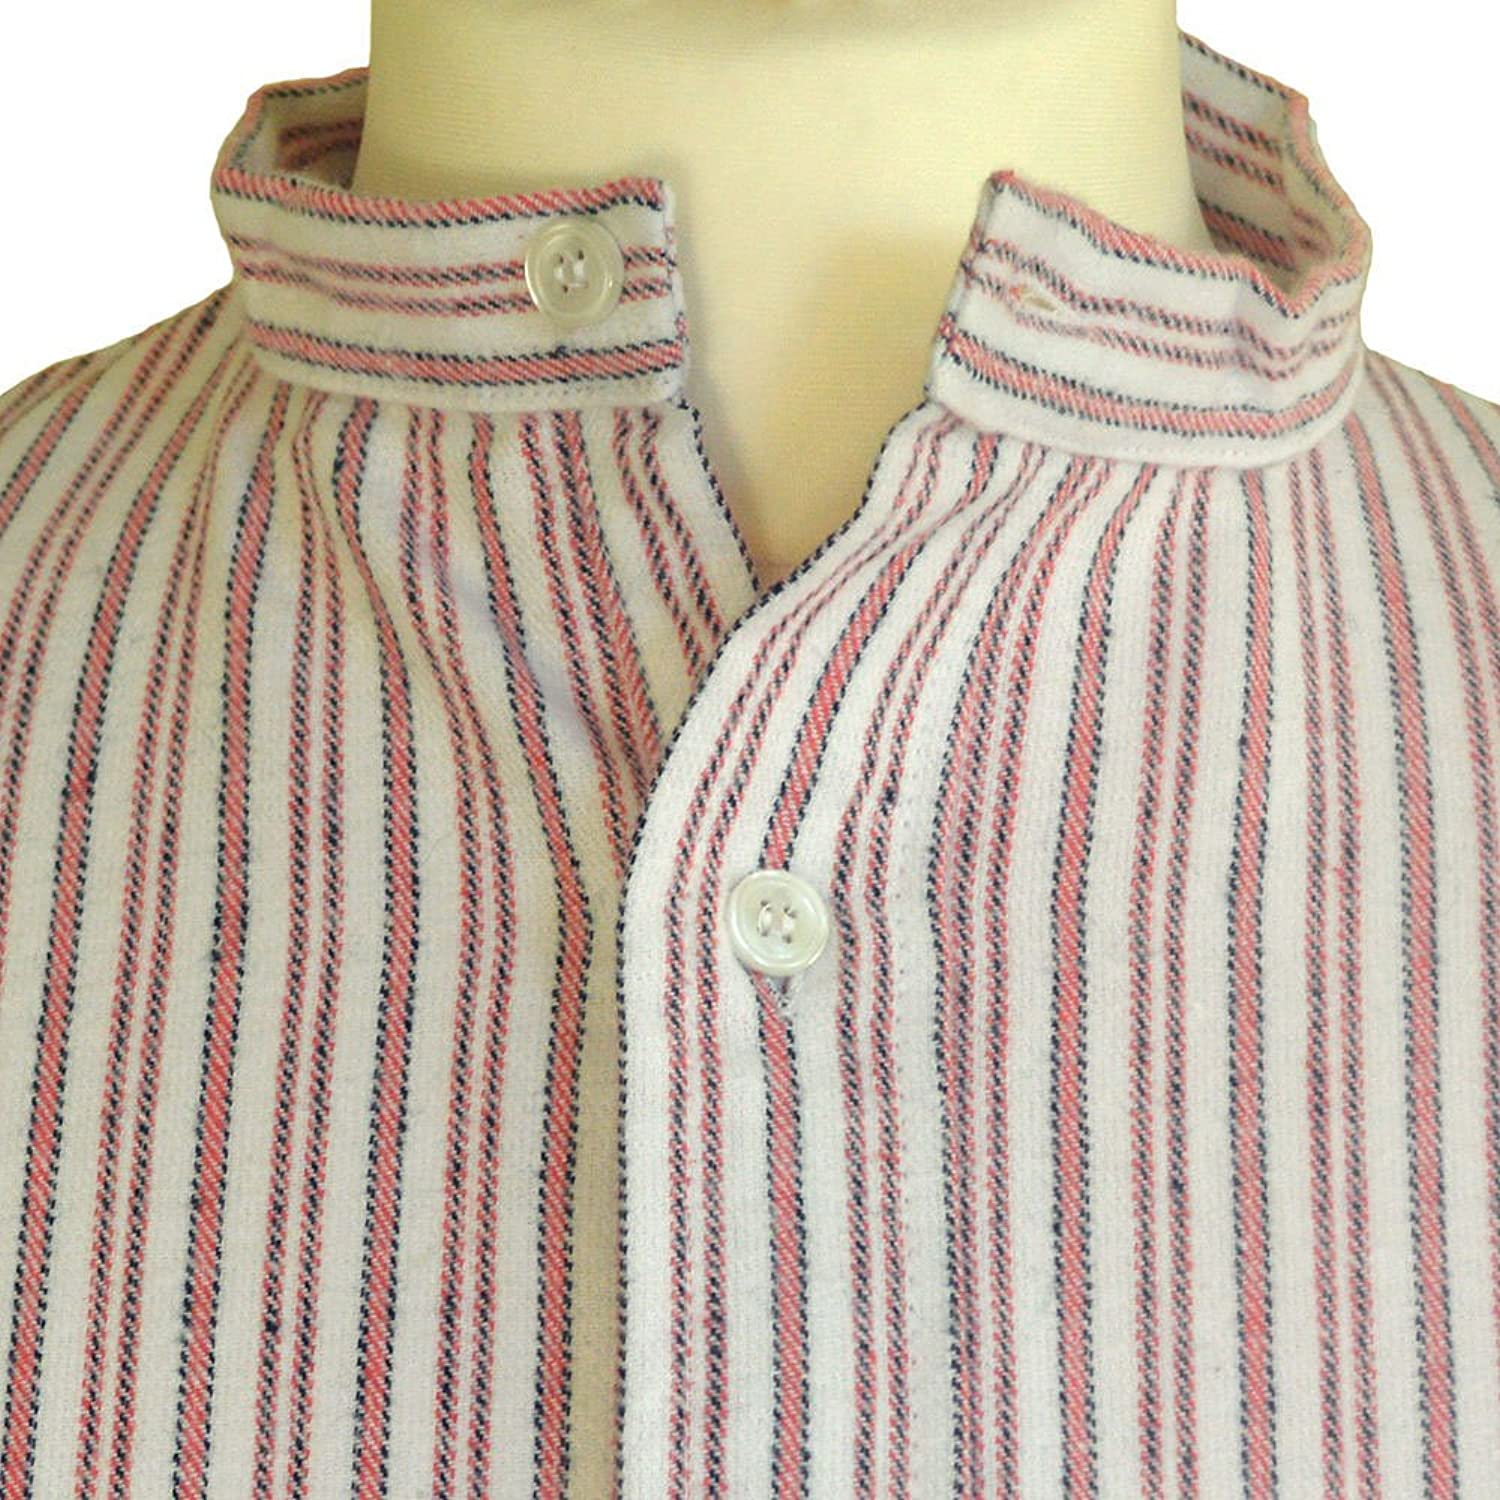 Brushed Cotton Nightshirt, Red with Narrow White Stripe, by Magee of Donegal